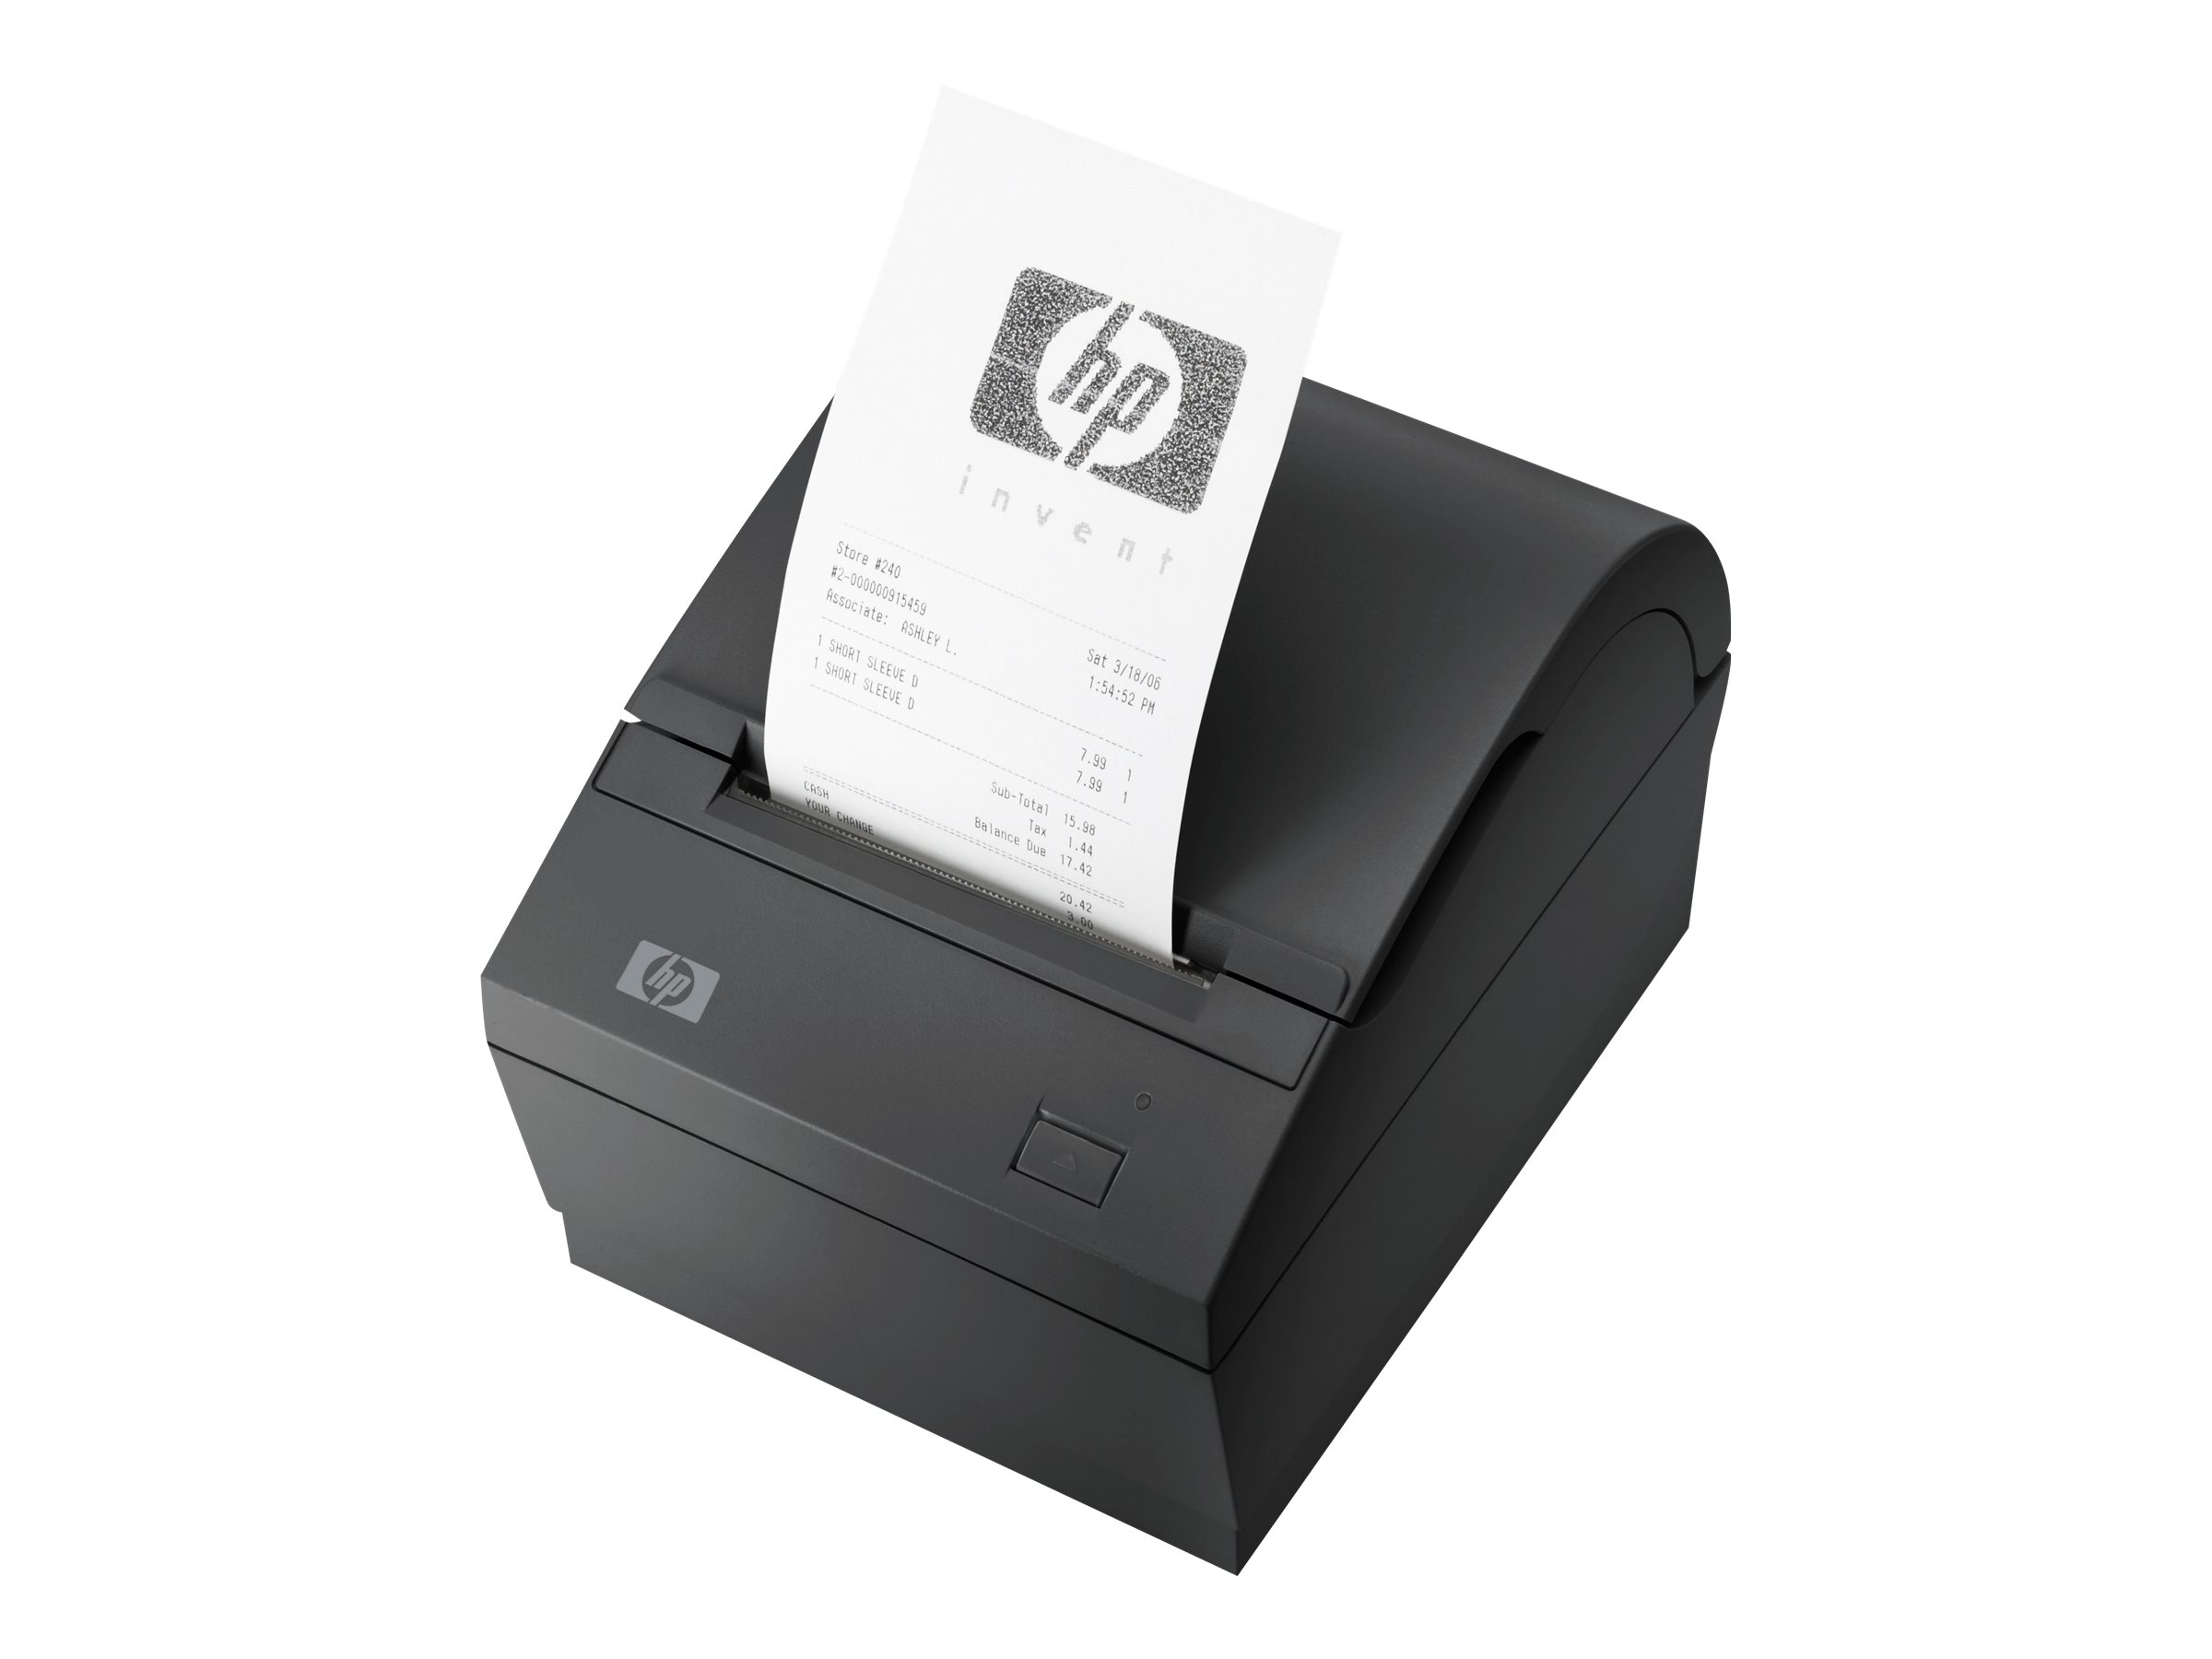 HP Dual Serial USB Thermal Receipt Printer - Belegdrucker - Thermopapier - 203 dpi - bis zu 74 Zeilen/Sek. - USB, seriell